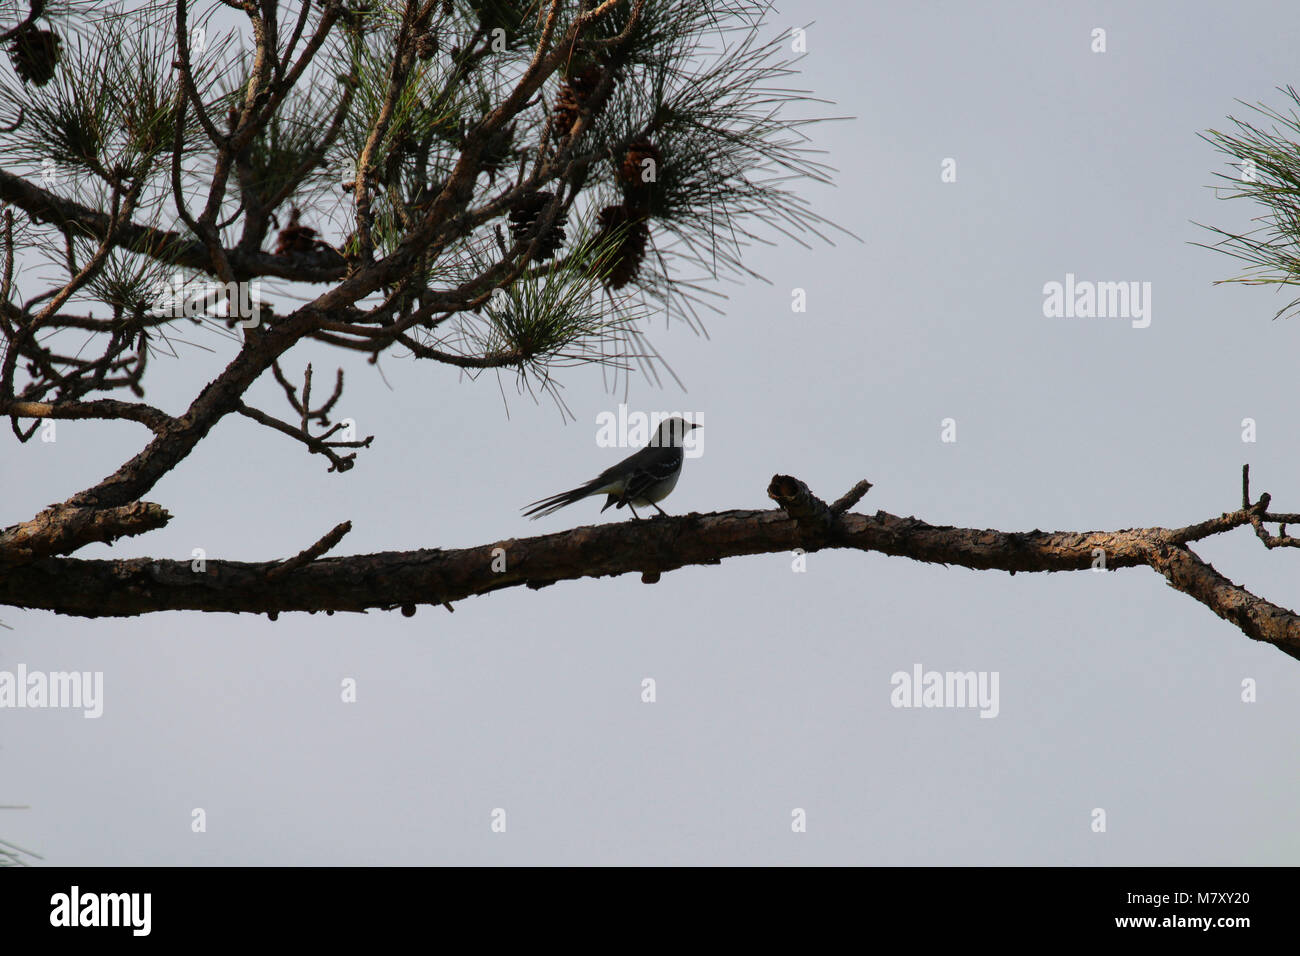 Silhouette Of A Northern Mockingbird Mimus Polyglottos Perched On Branch In Pine